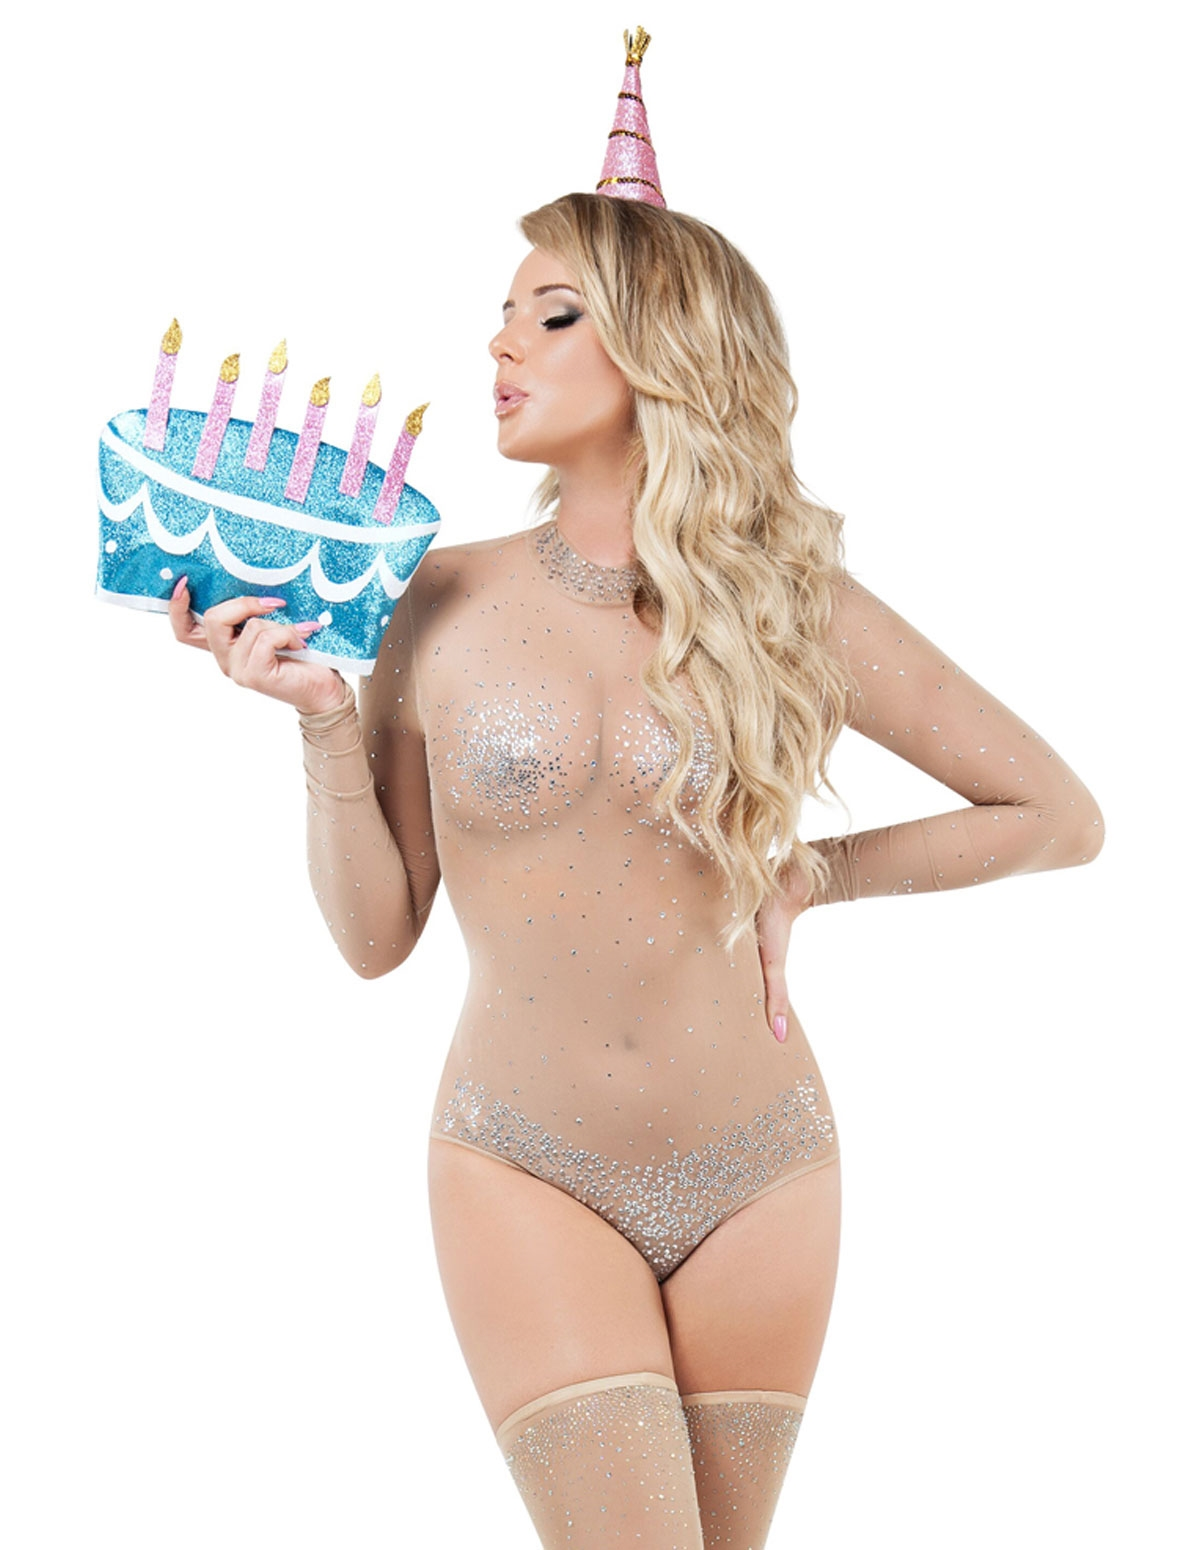 Birthday Suit Costume W/Cake Clutch